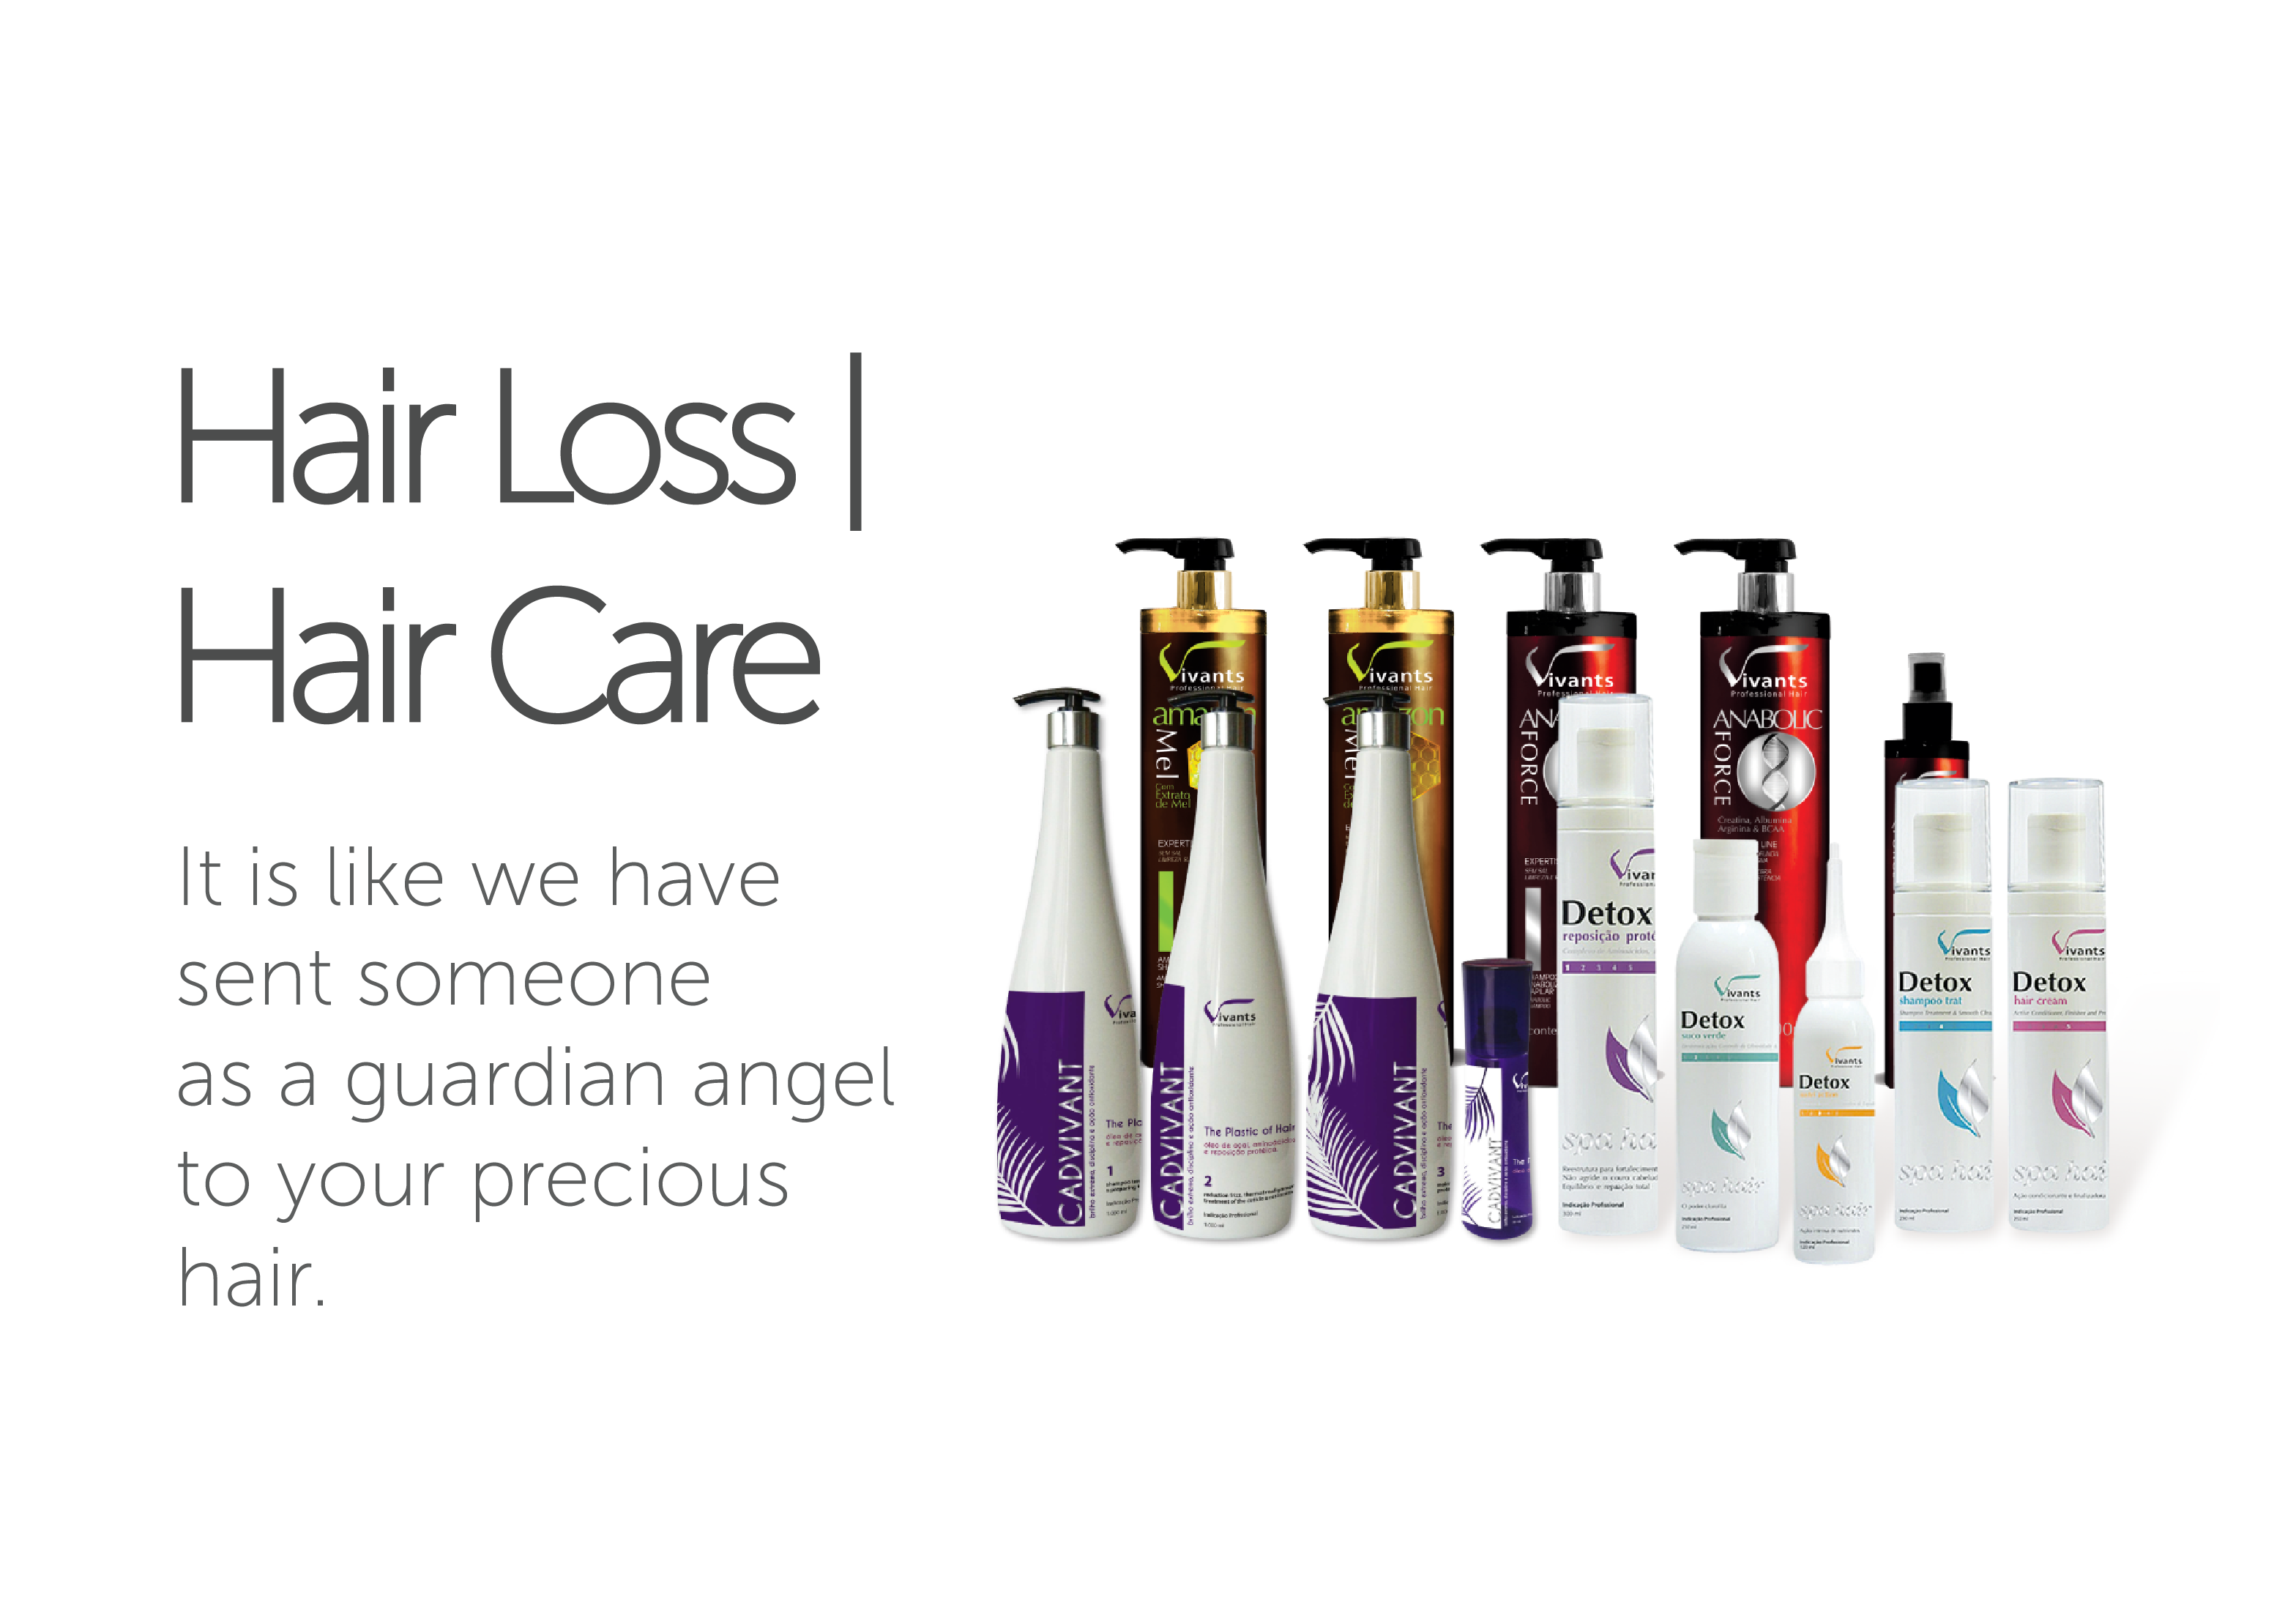 Hair Loss Hair care - It is like we have sent someone as a guardian angel to your precious hair.